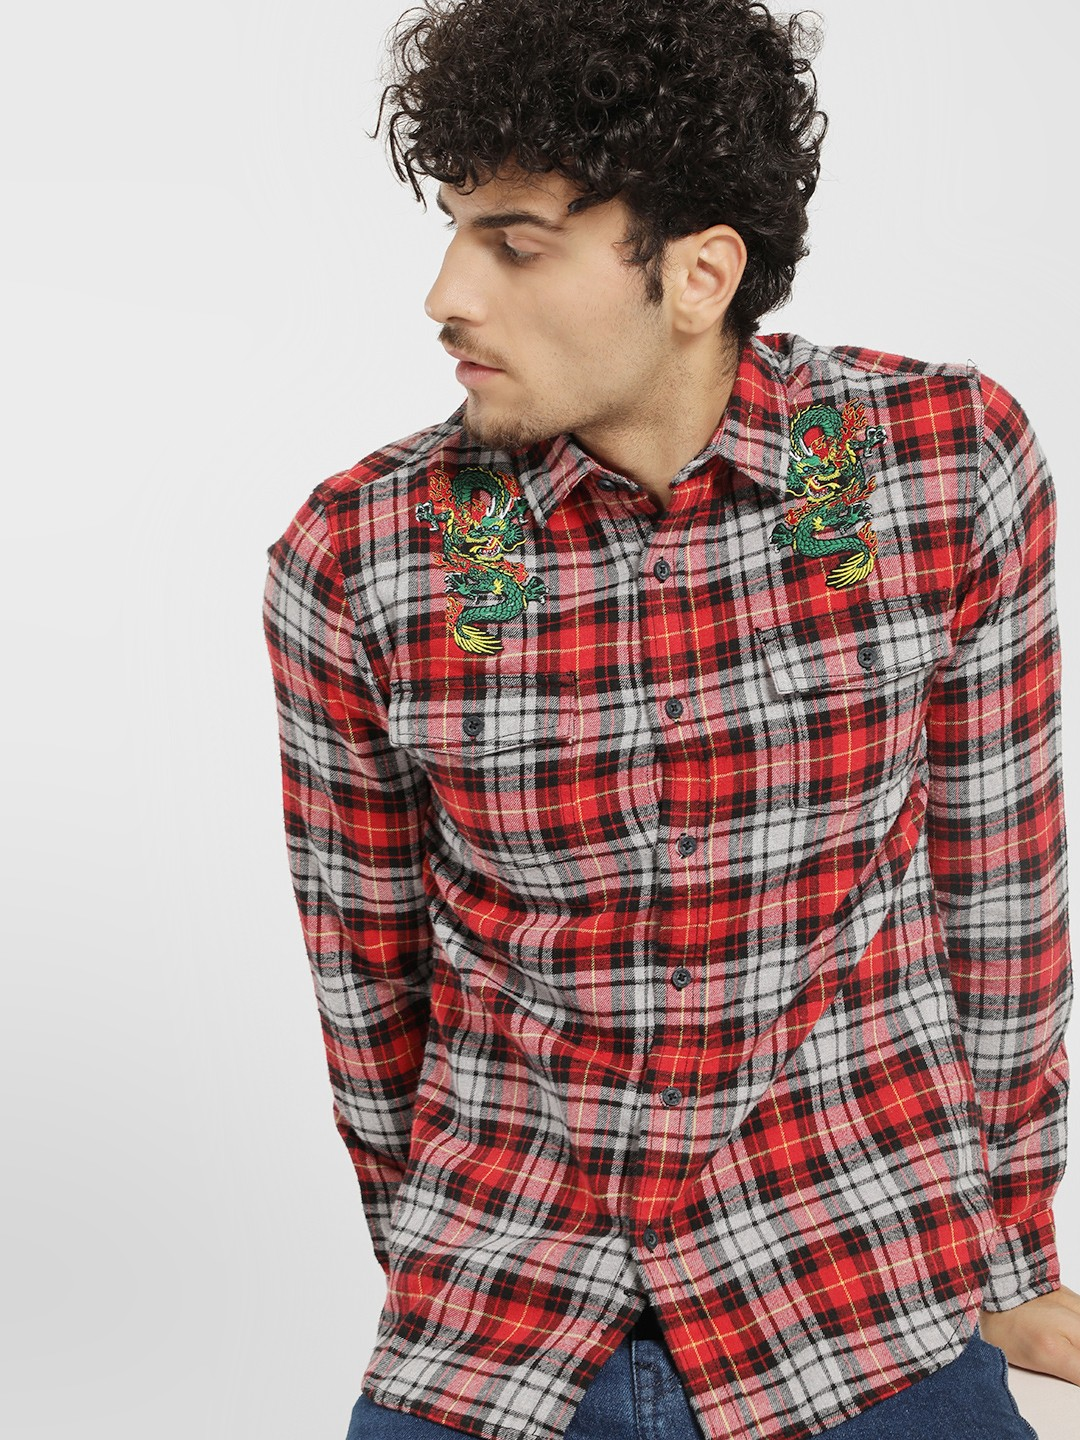 Blue Saint Red Dragon Embroidered Tartan Check Shirt 1